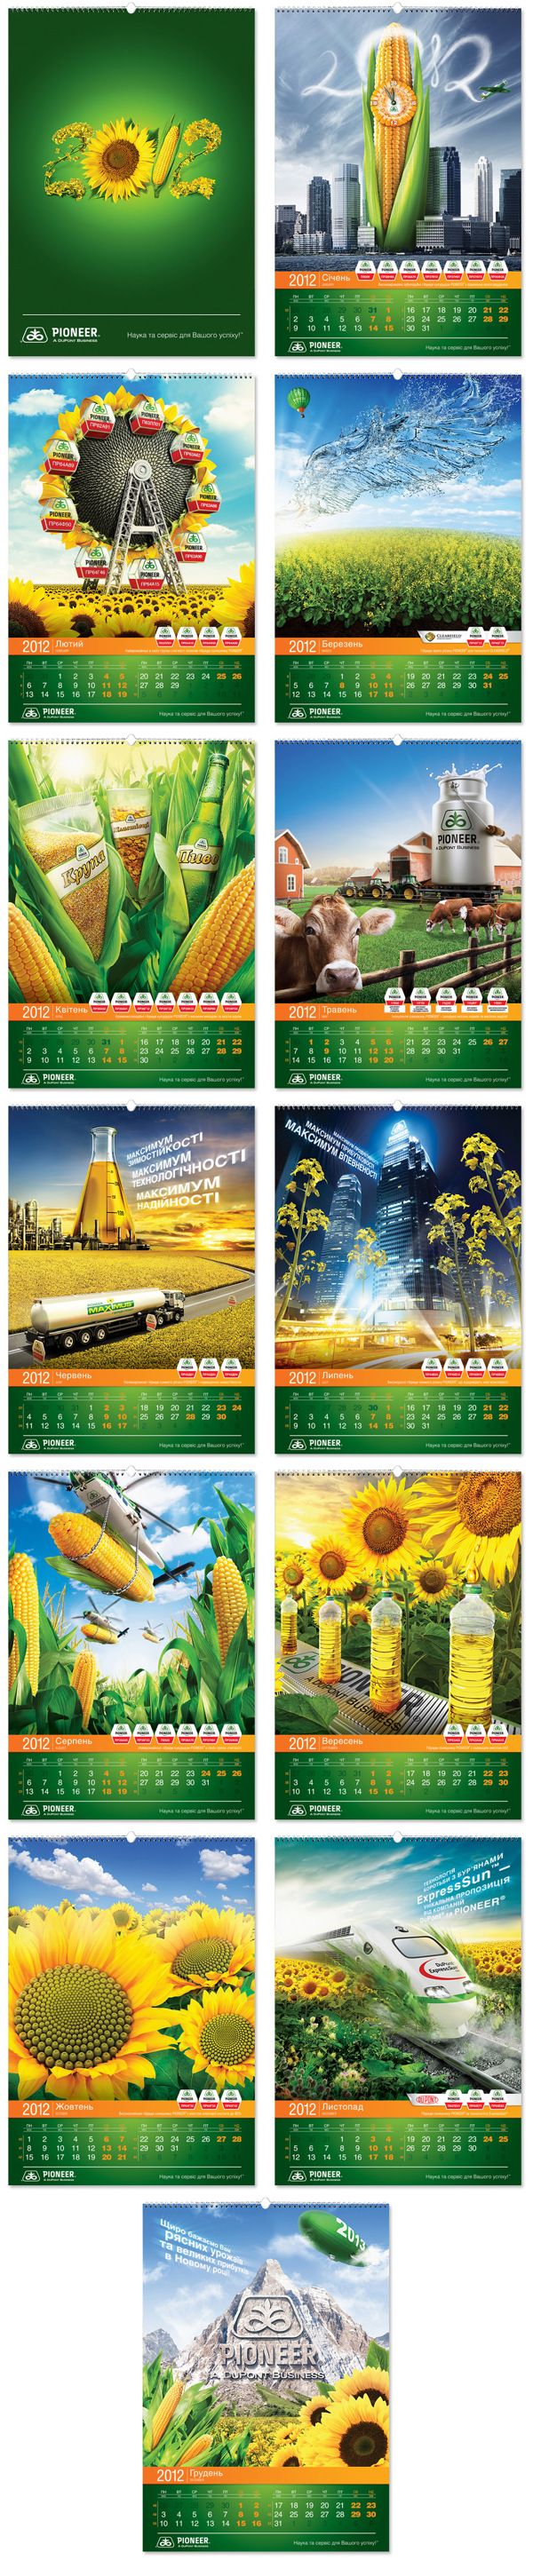 Pioneer. Corporate calendar design 2012. by Vitamin ADV, via Behance ...